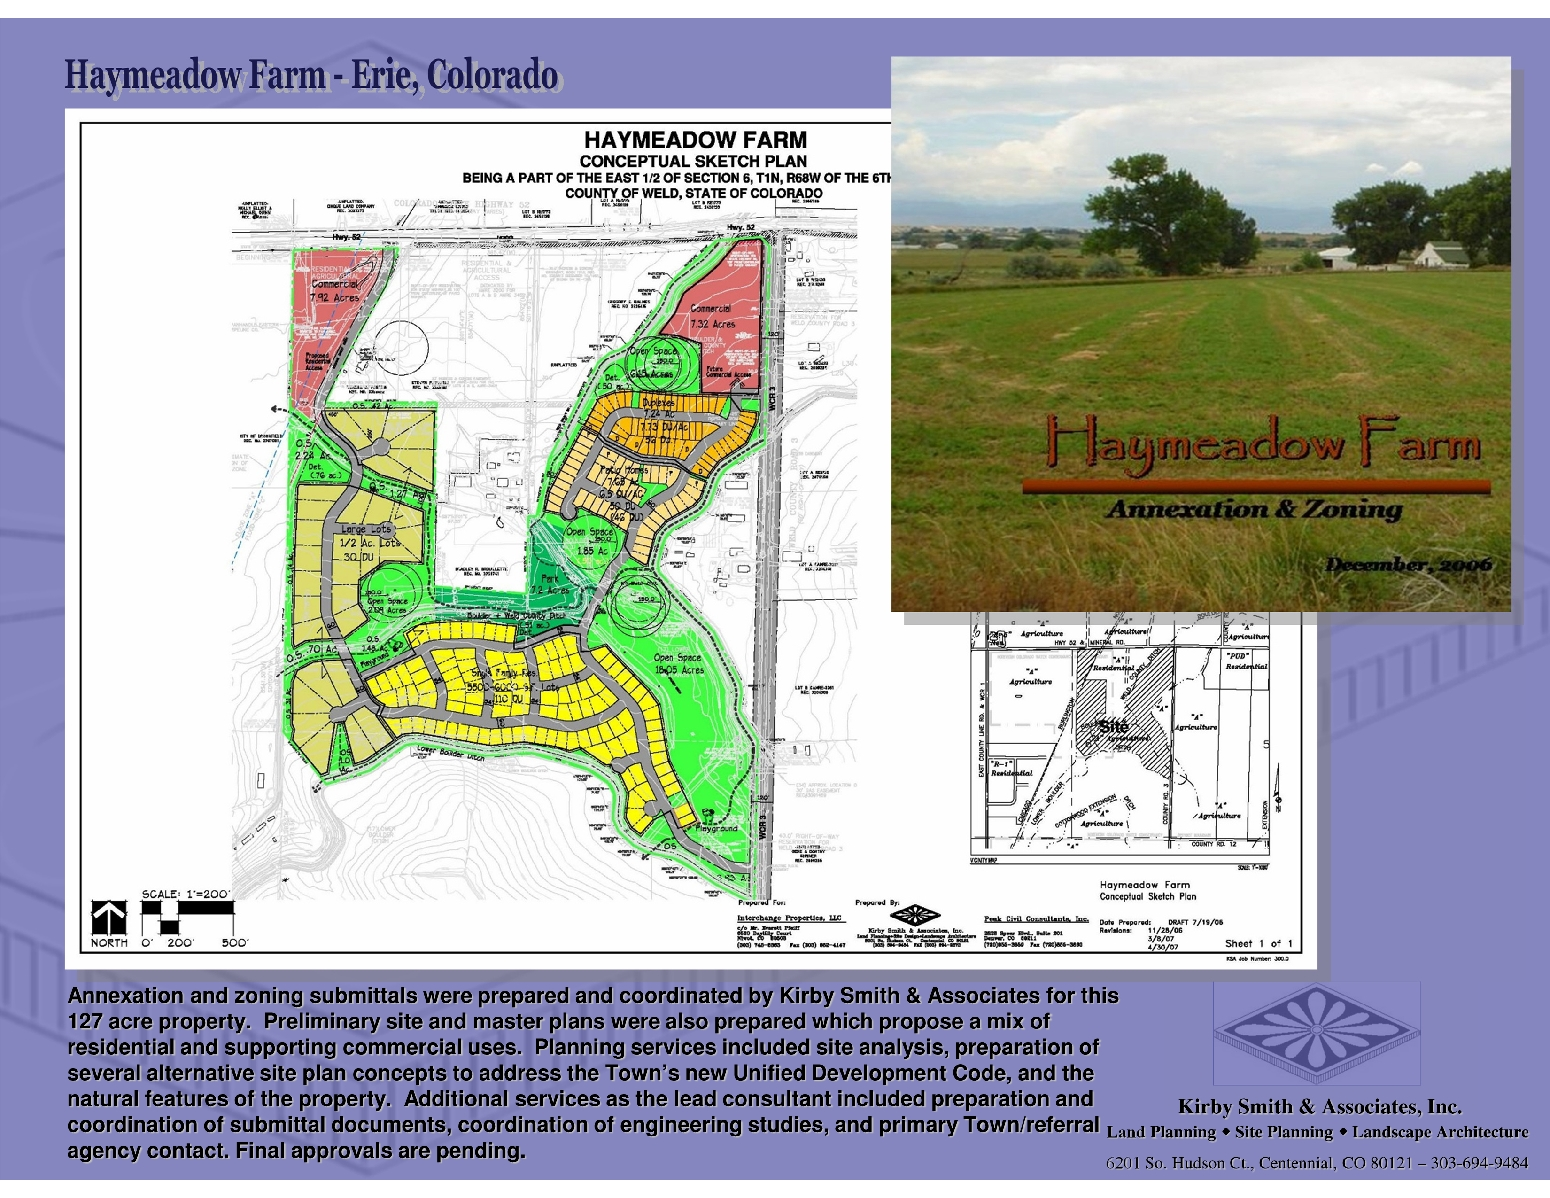 Annexation and zoning submittals were prepared and coordinated by Kirby Smith & Associates for this 127 acre property.  Preliminary site and master plans were also prepared which propose a mix of residential and supporting commercial uses.  Planning services included site analysis, preparation of several alternative site plan concepts to address the Town's new Unified Development Code, and the natural features of the property.  Additional services as the lead consultant included preparation and coordination of submittal documents, coordination of engineering studies, and primary Town/referral agency contact. Final approvals are pending.